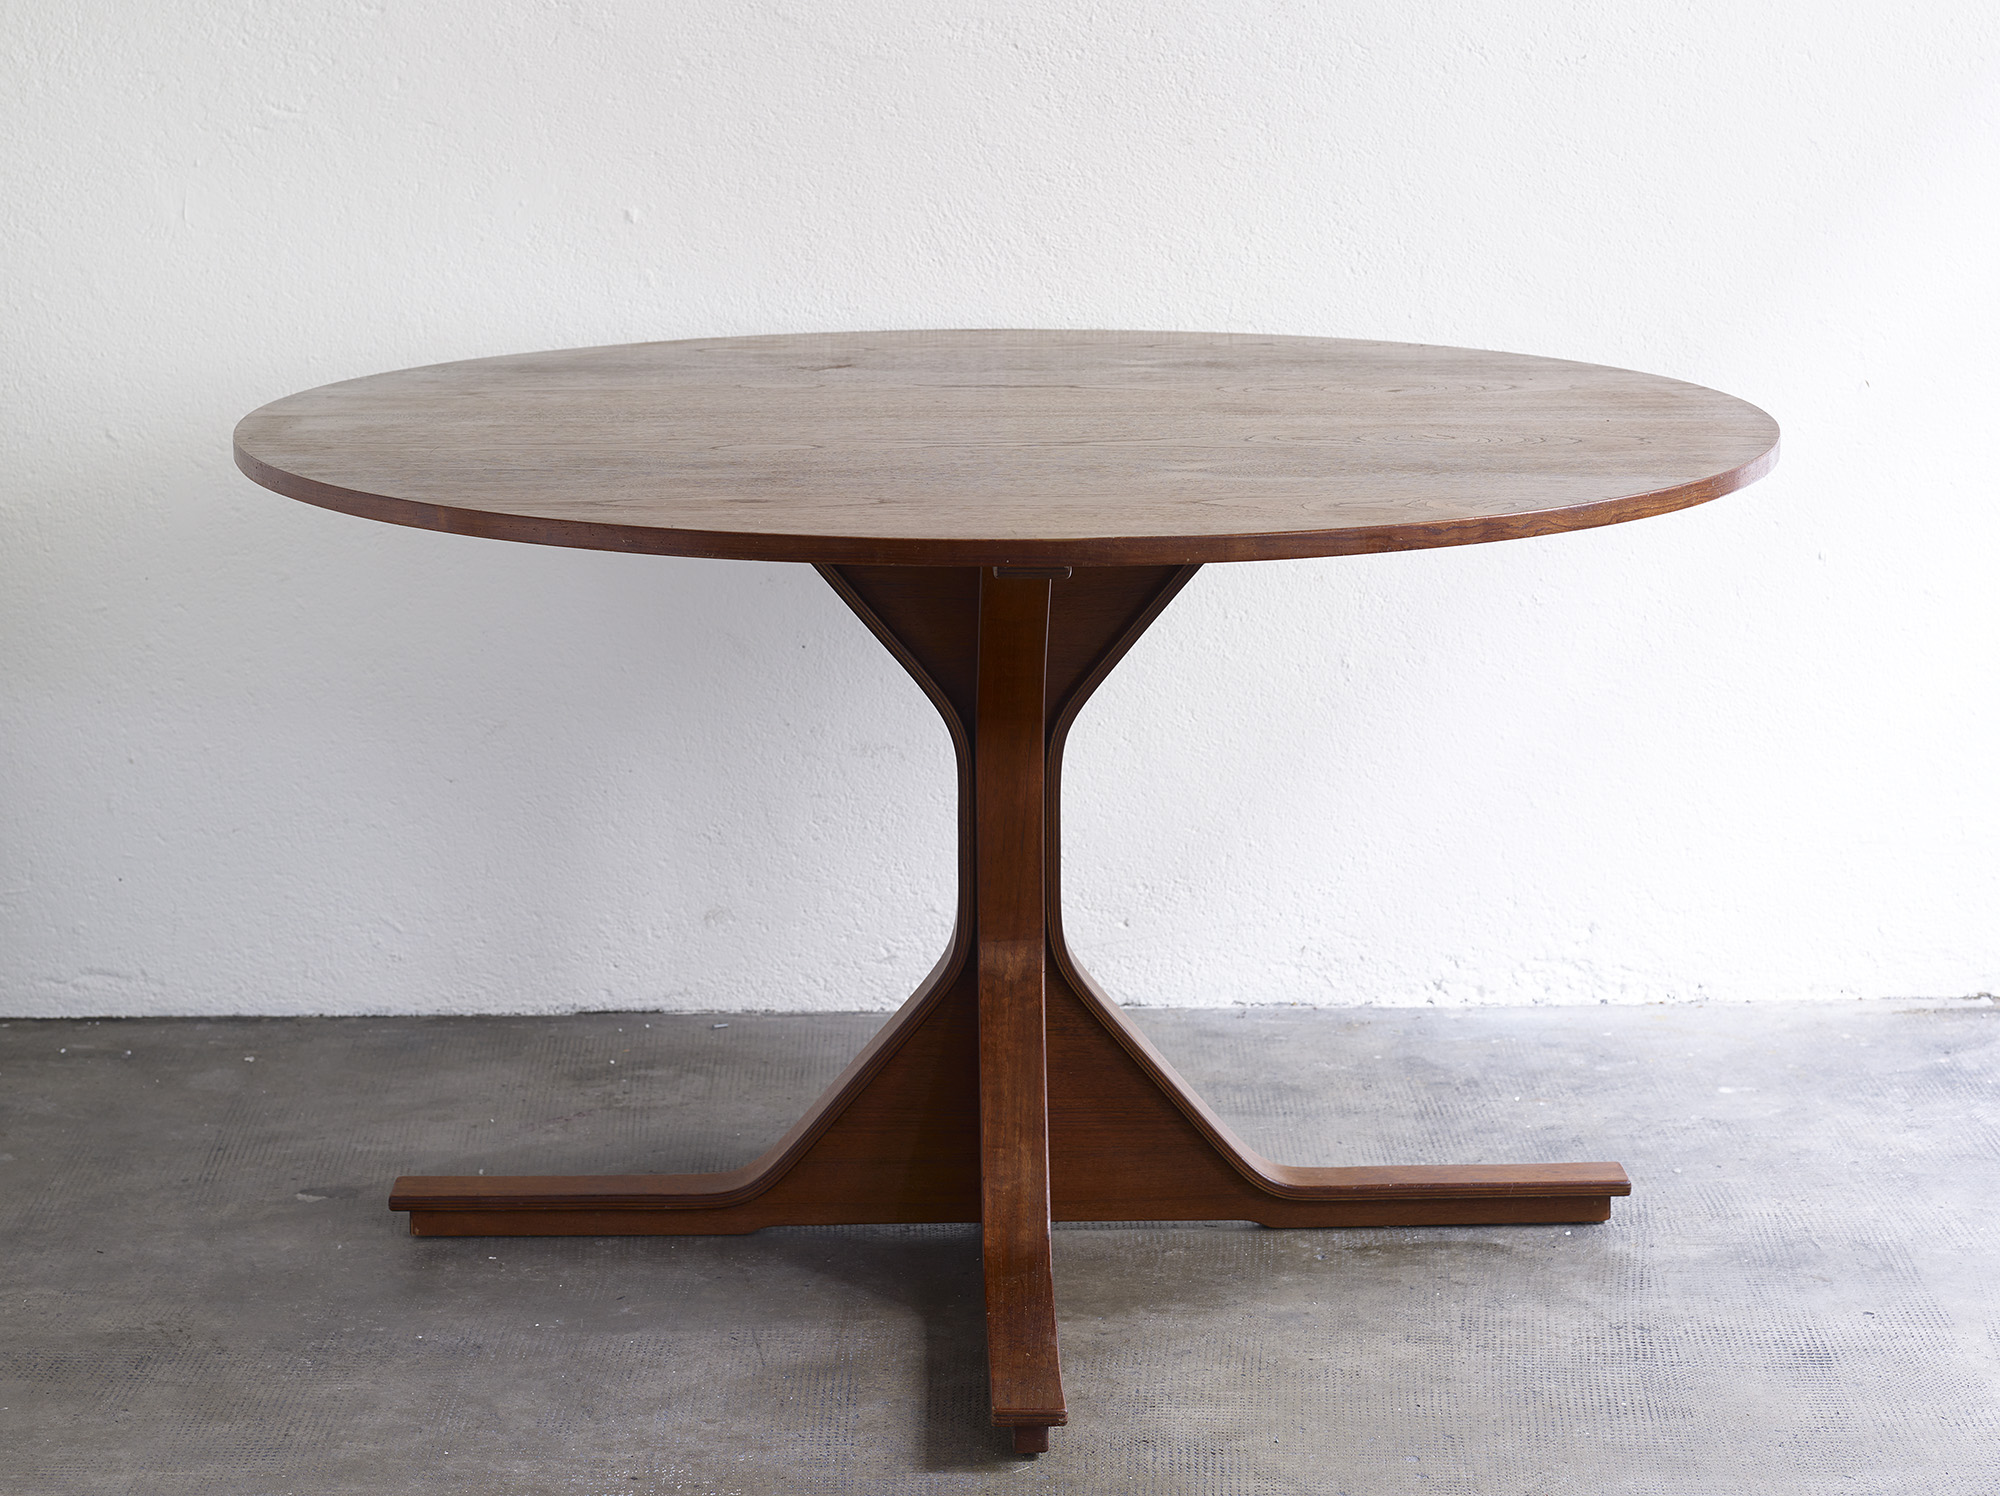 teak-dining-table-model-522-by-gianfranco-frattini-image-01